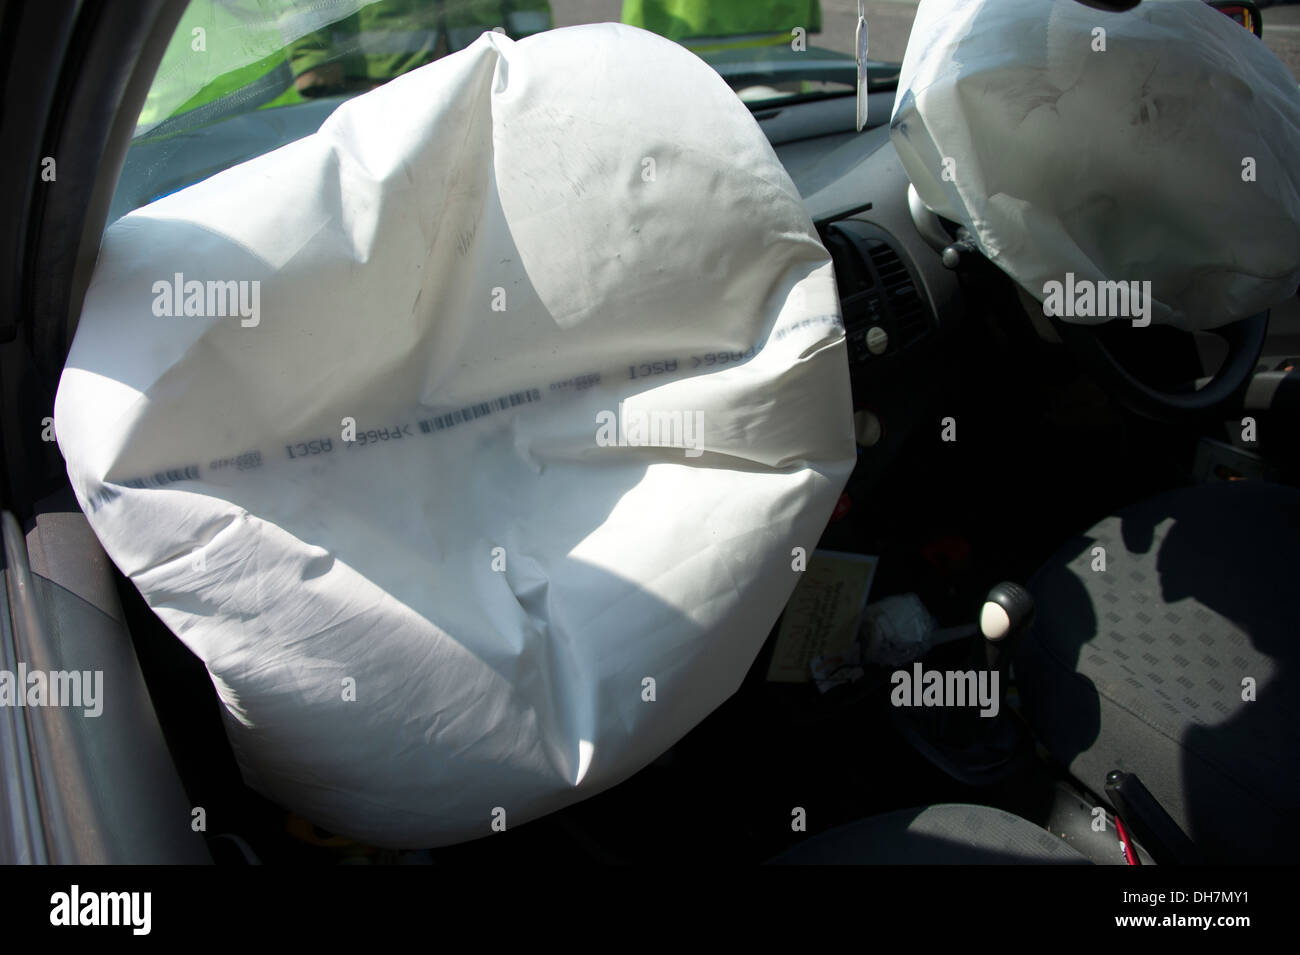 car-airbags-deployed-gone-off-air-bags-b